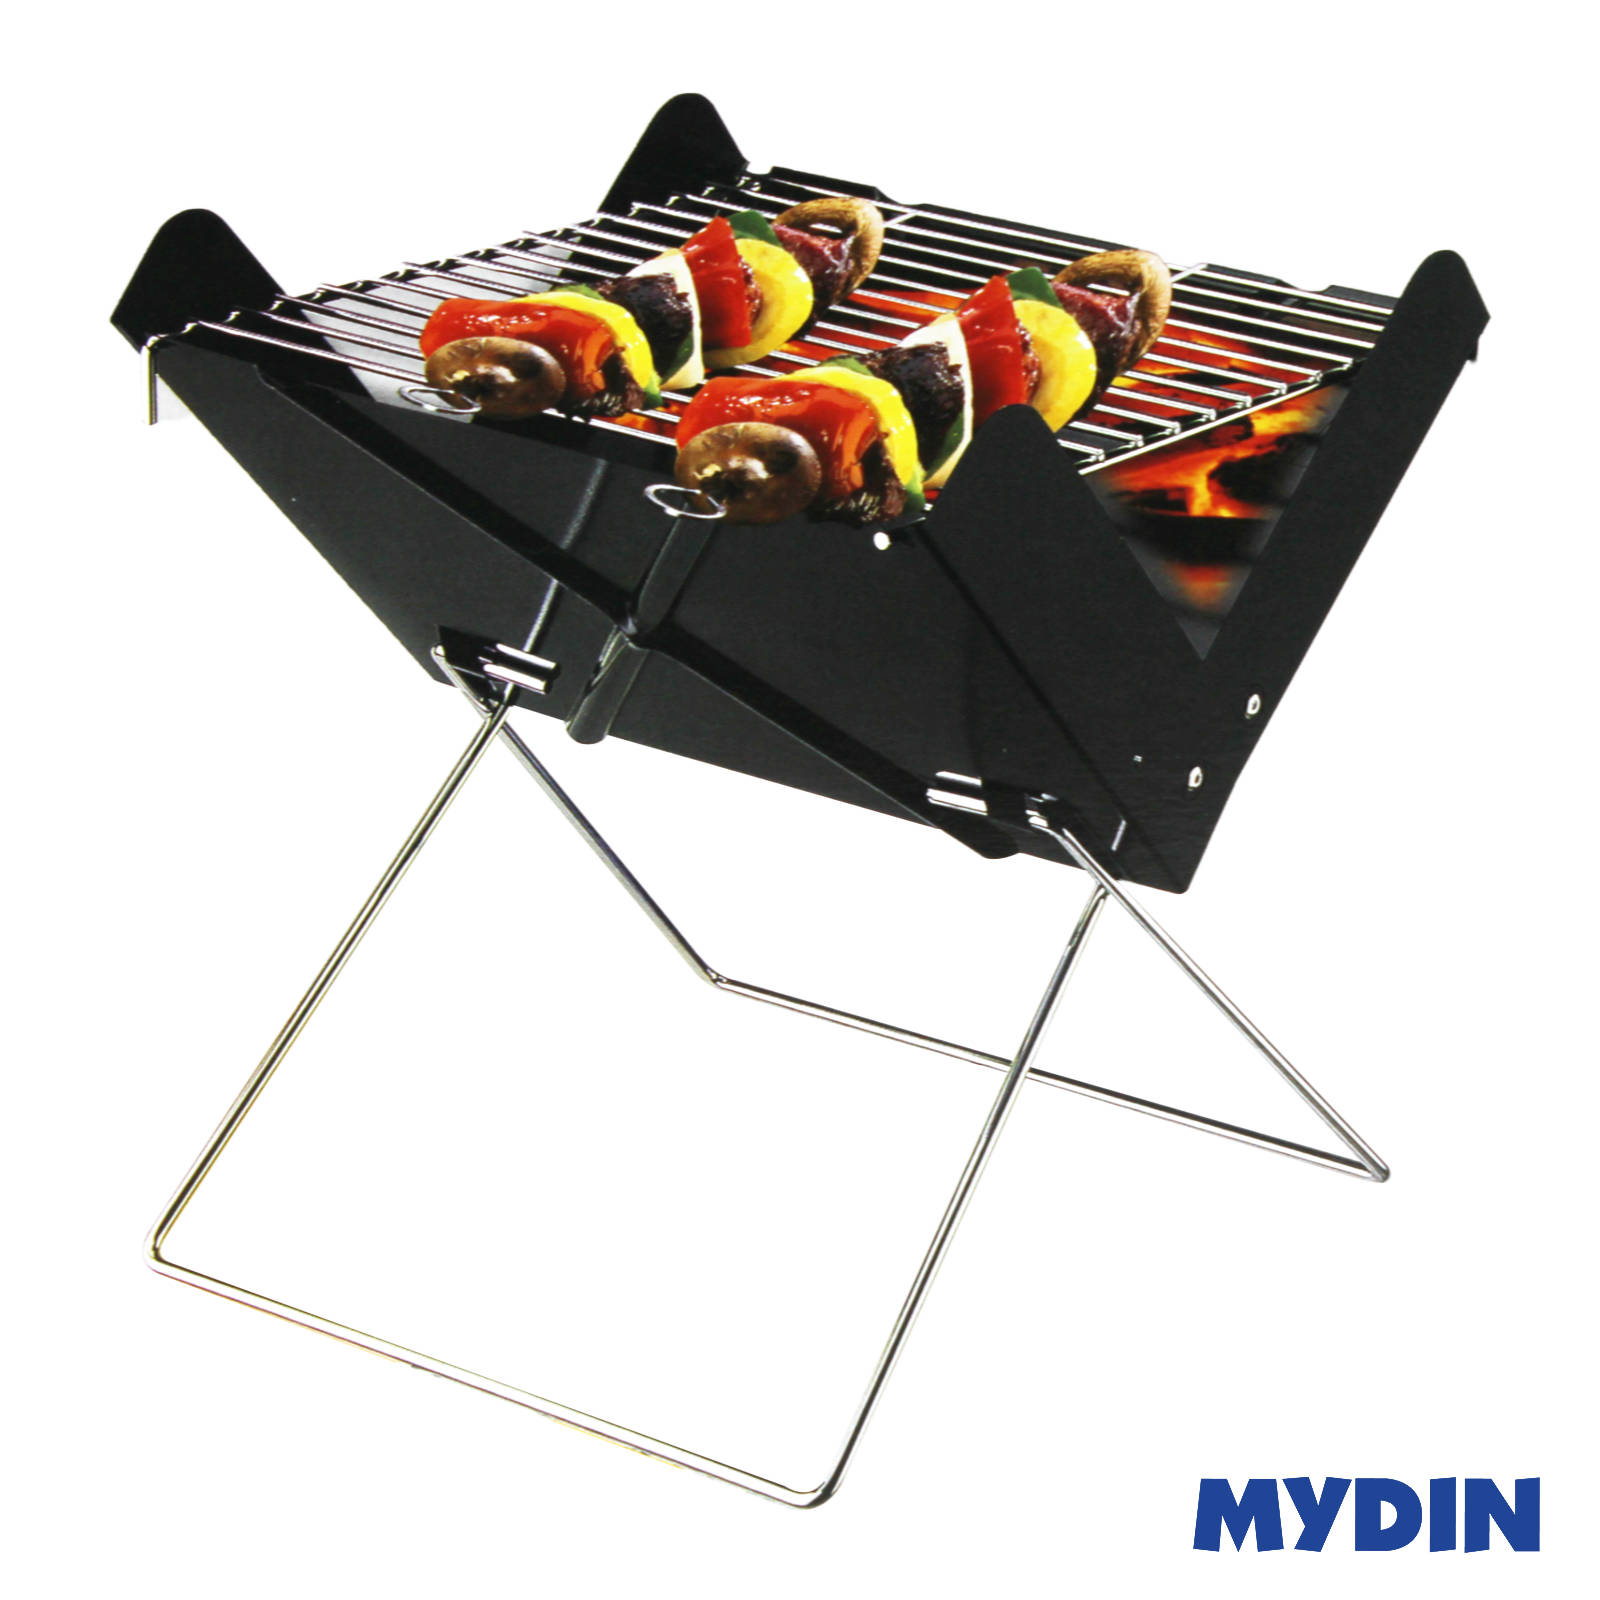 Portable Charcoal Grill S7103